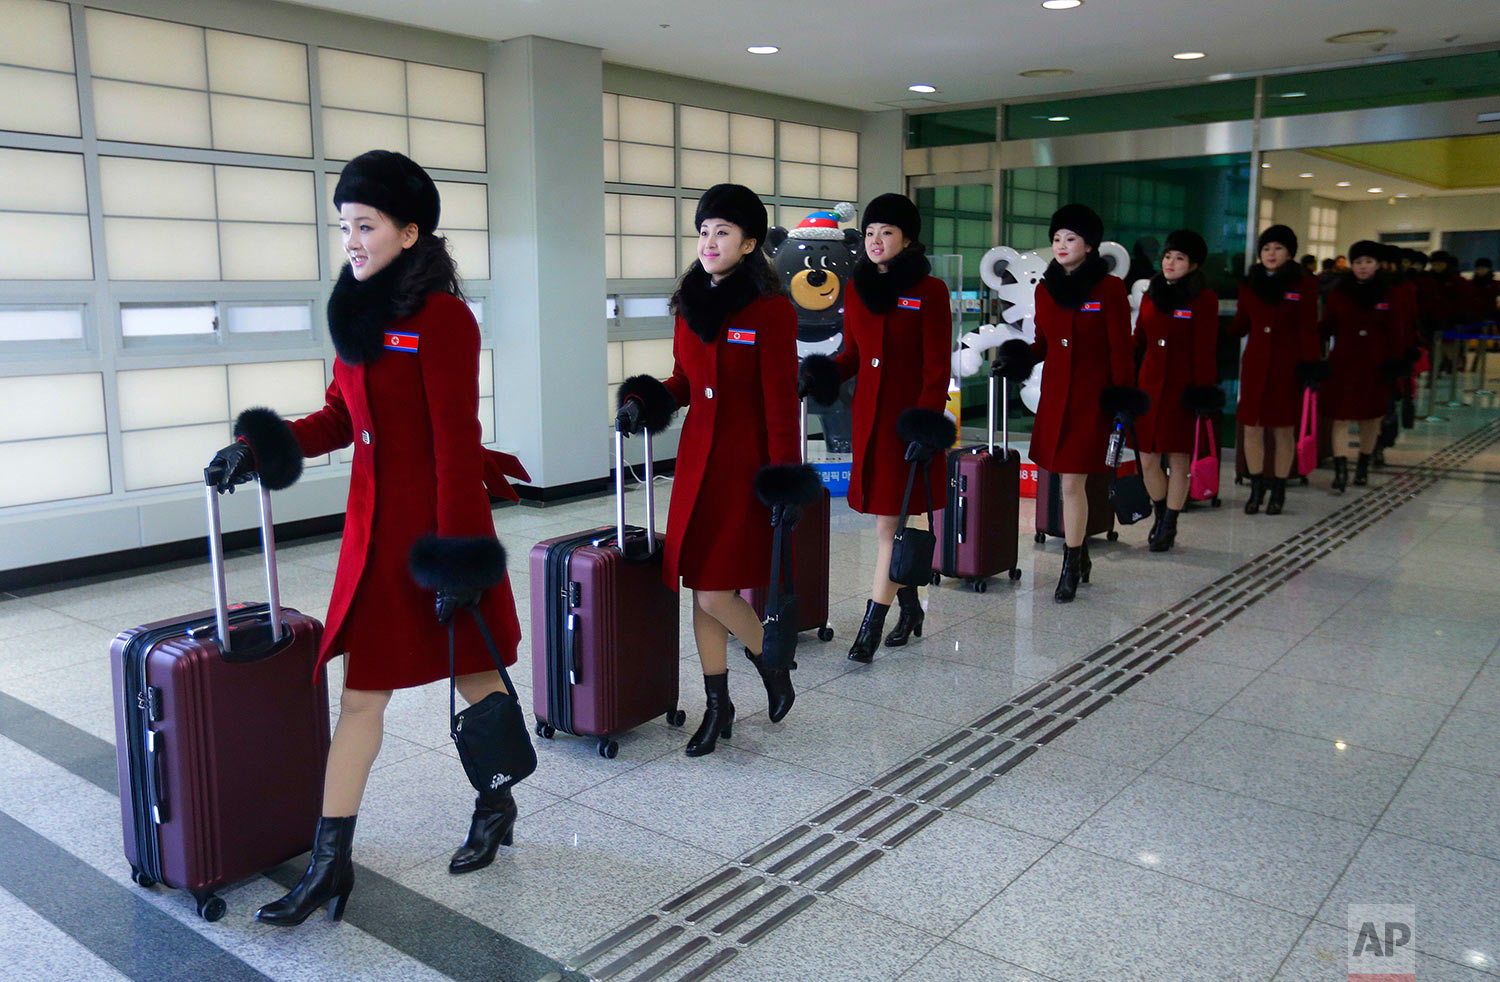 North Korean cheering squads arrive at the Korean-transit office near the Demilitarized Zone in Paju, South Korea, Wednesday, Feb. 7, 2018. A North Korean delegation, including members of a state-trained cheering group, arrived in South Korea on Wednesday for the Pyeongchang Winter Olympics. (AP Photo/Ahn Young-joon. Pool)